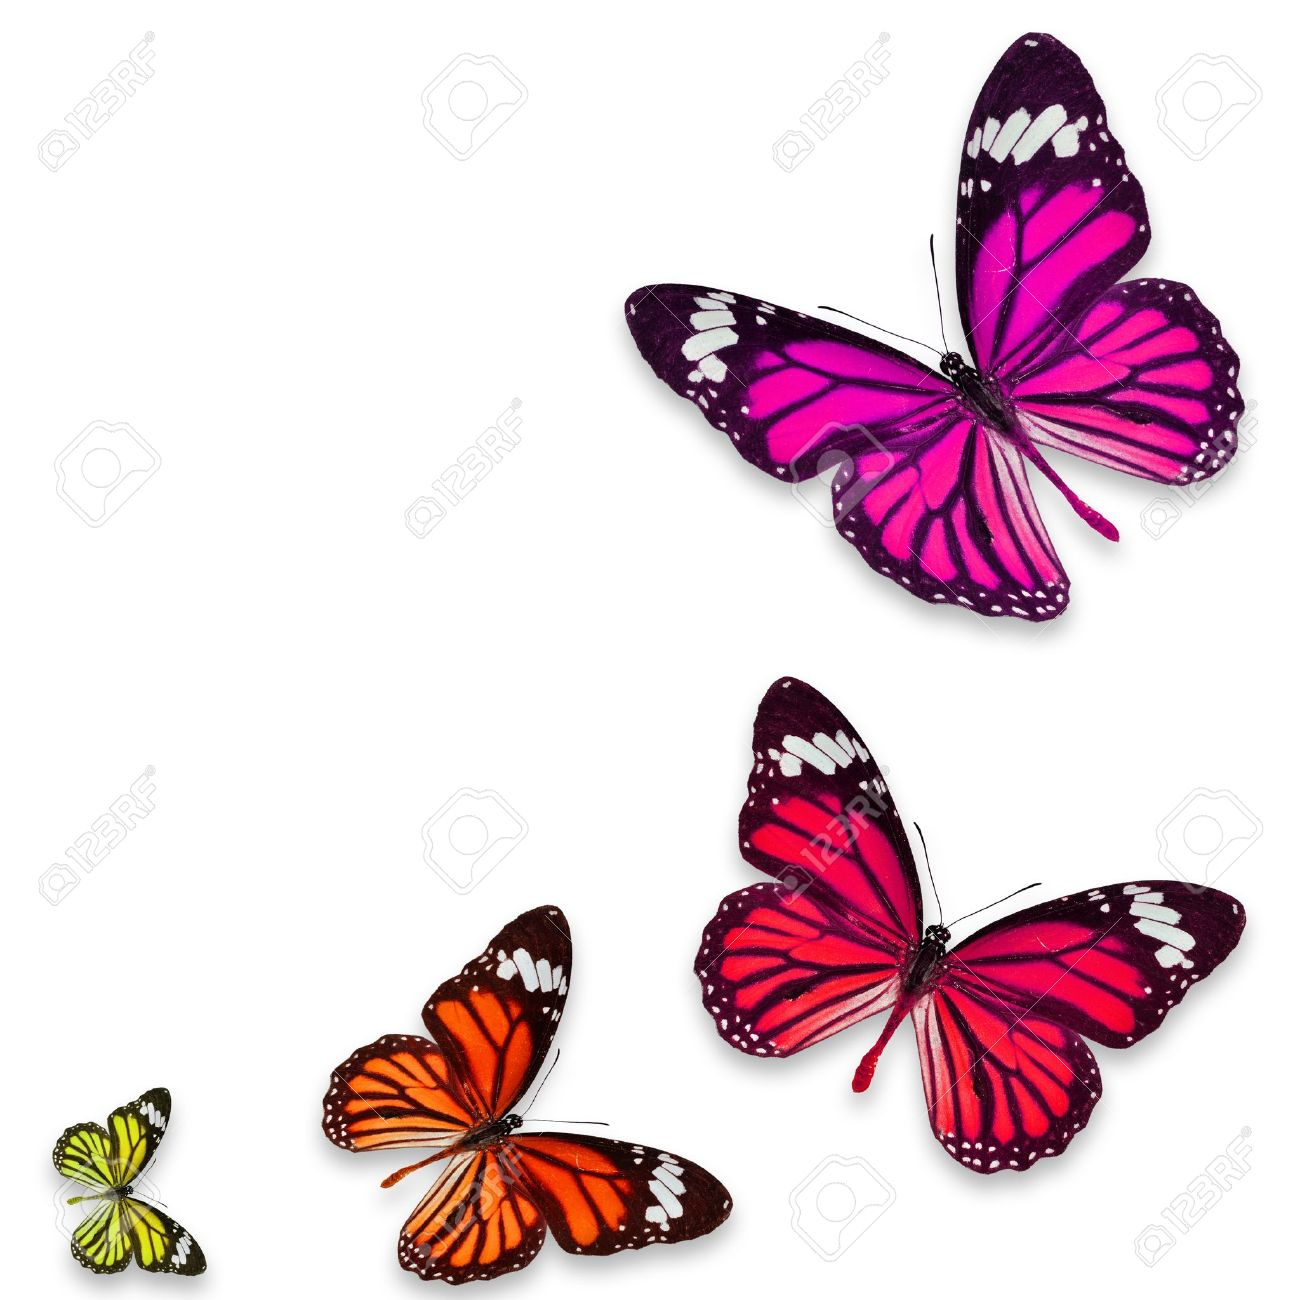 Colorful Butterfly Isolated On White Background Stock Photo, Picture ...